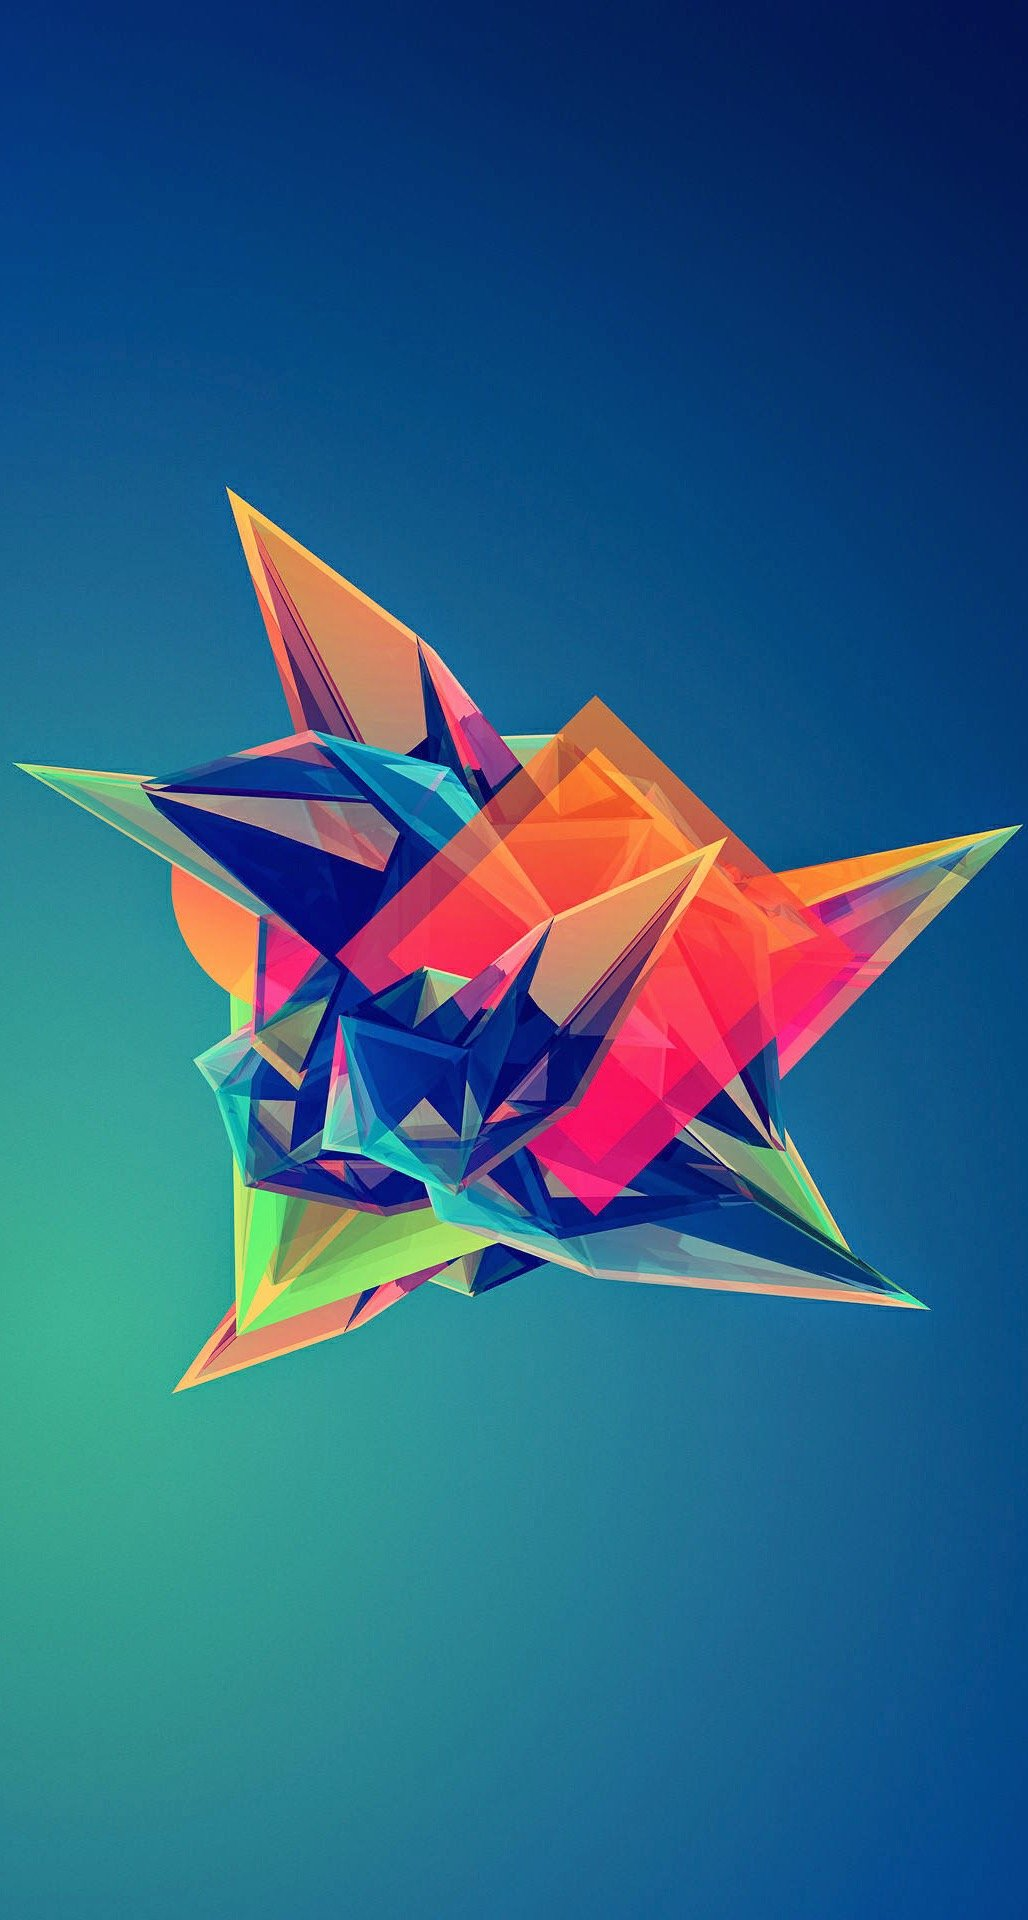 Abstract Wallpaper Tutorial Photoshop Cs6 | Abstract ...